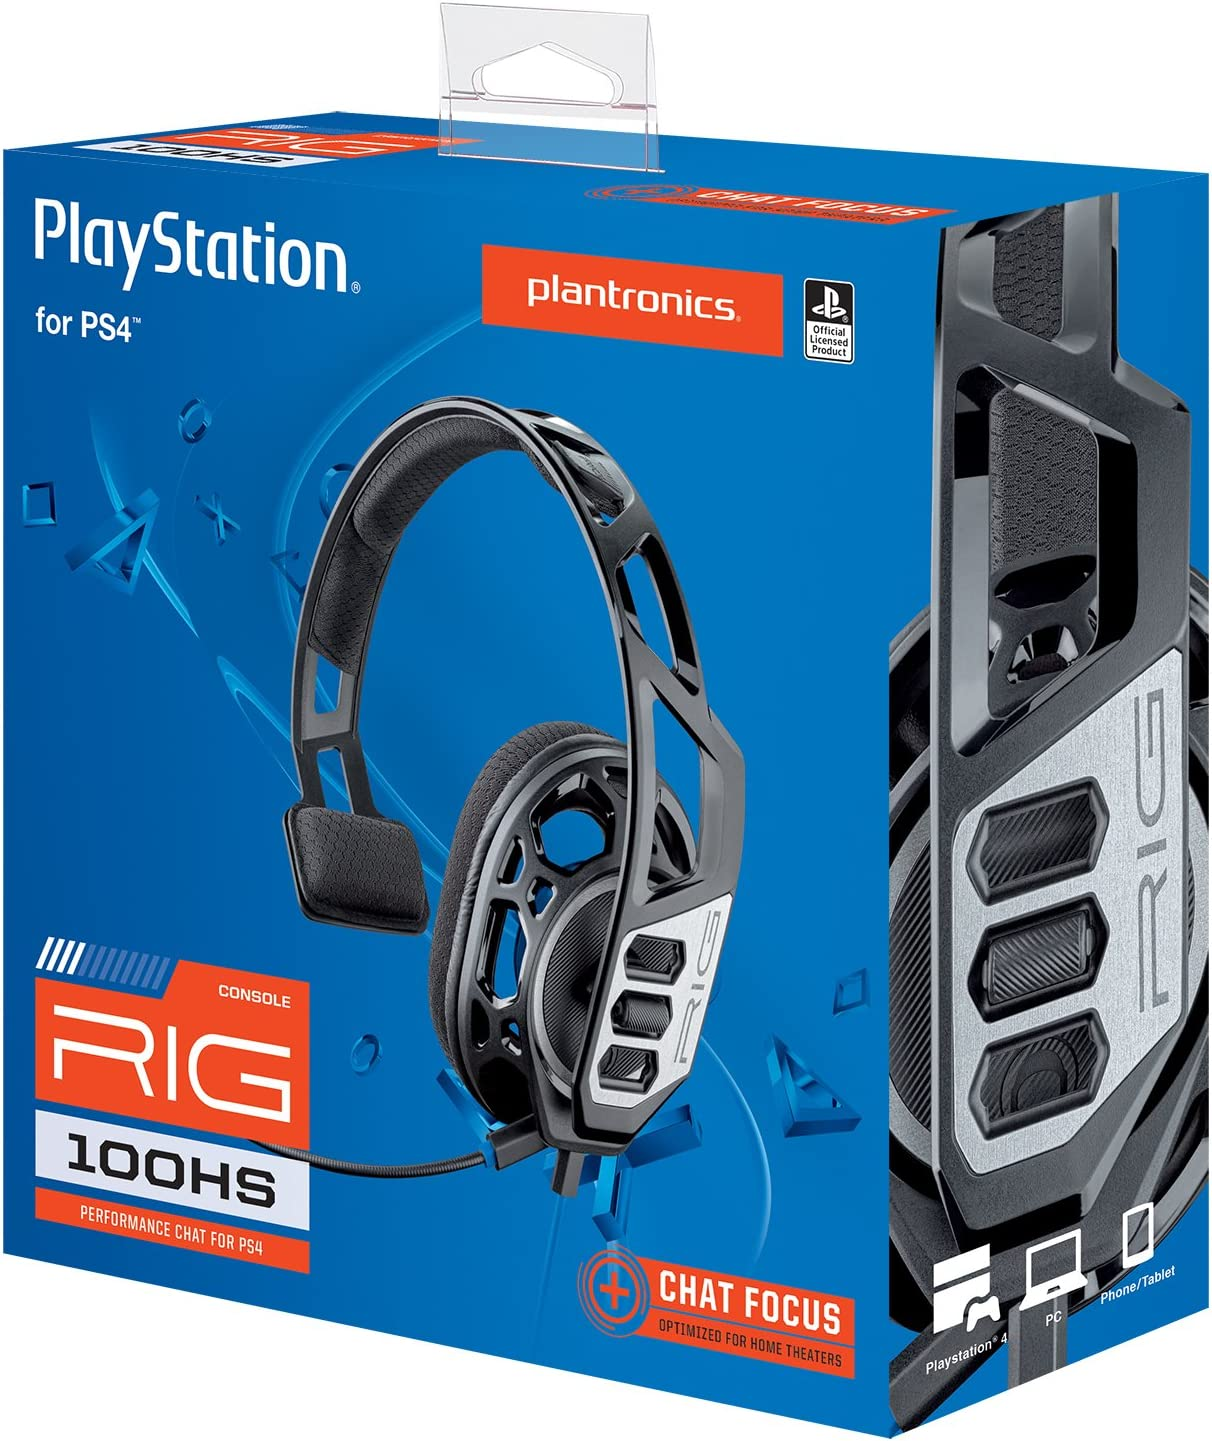 Amazon.com: Plantronics Gaming Headset, RIG 100HS Gaming Headset for PlayStation 4 with Open Ear Full Range Chat: Video Games